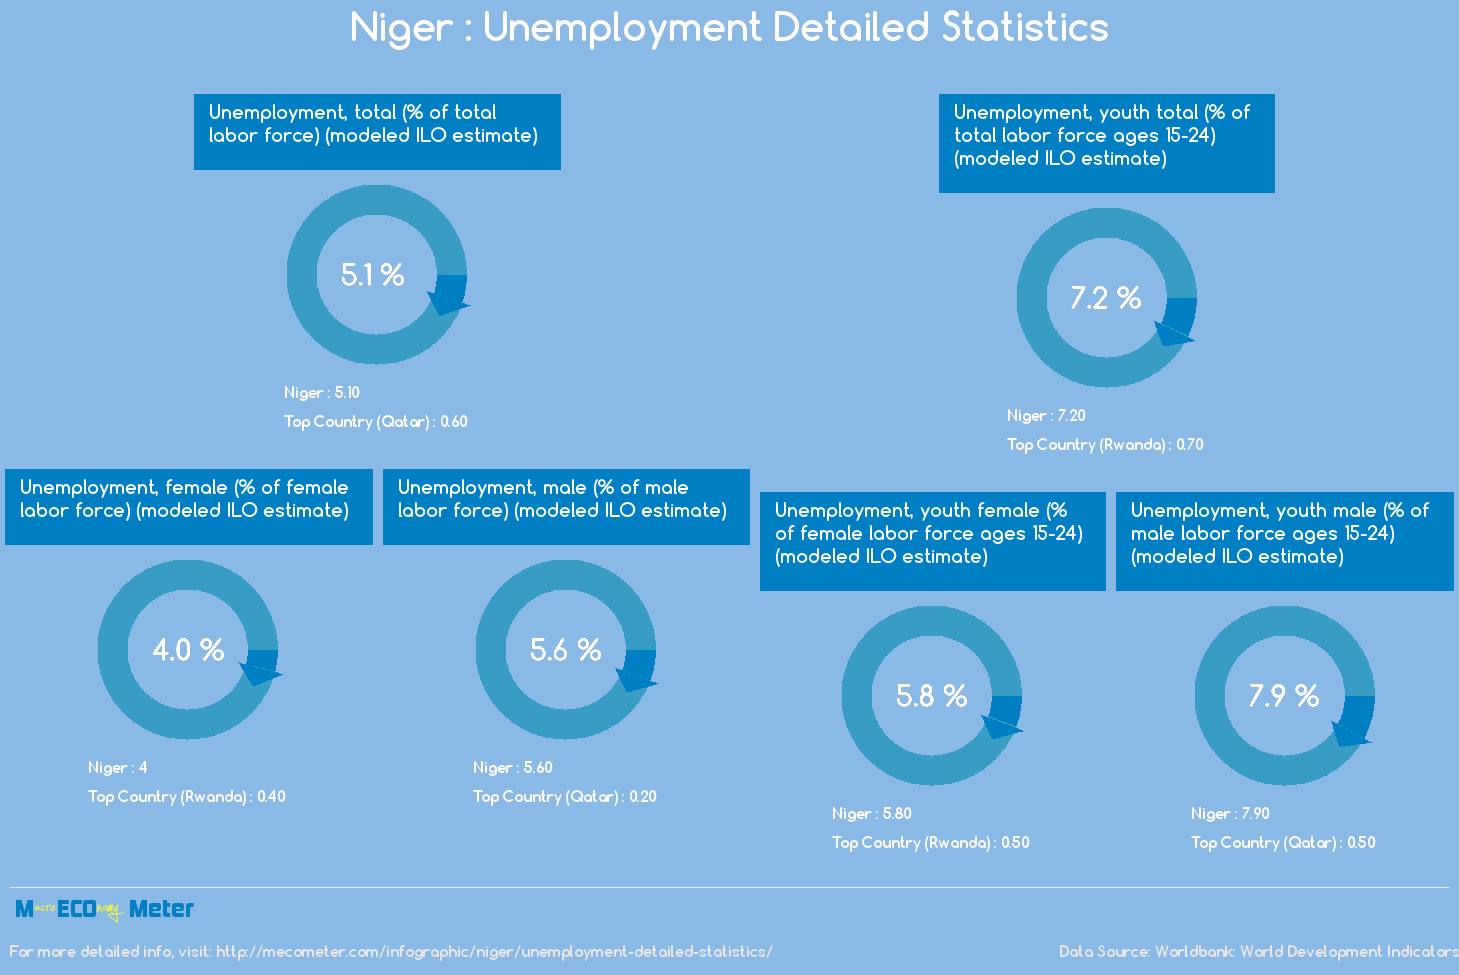 Niger : Unemployment Detailed Statistics